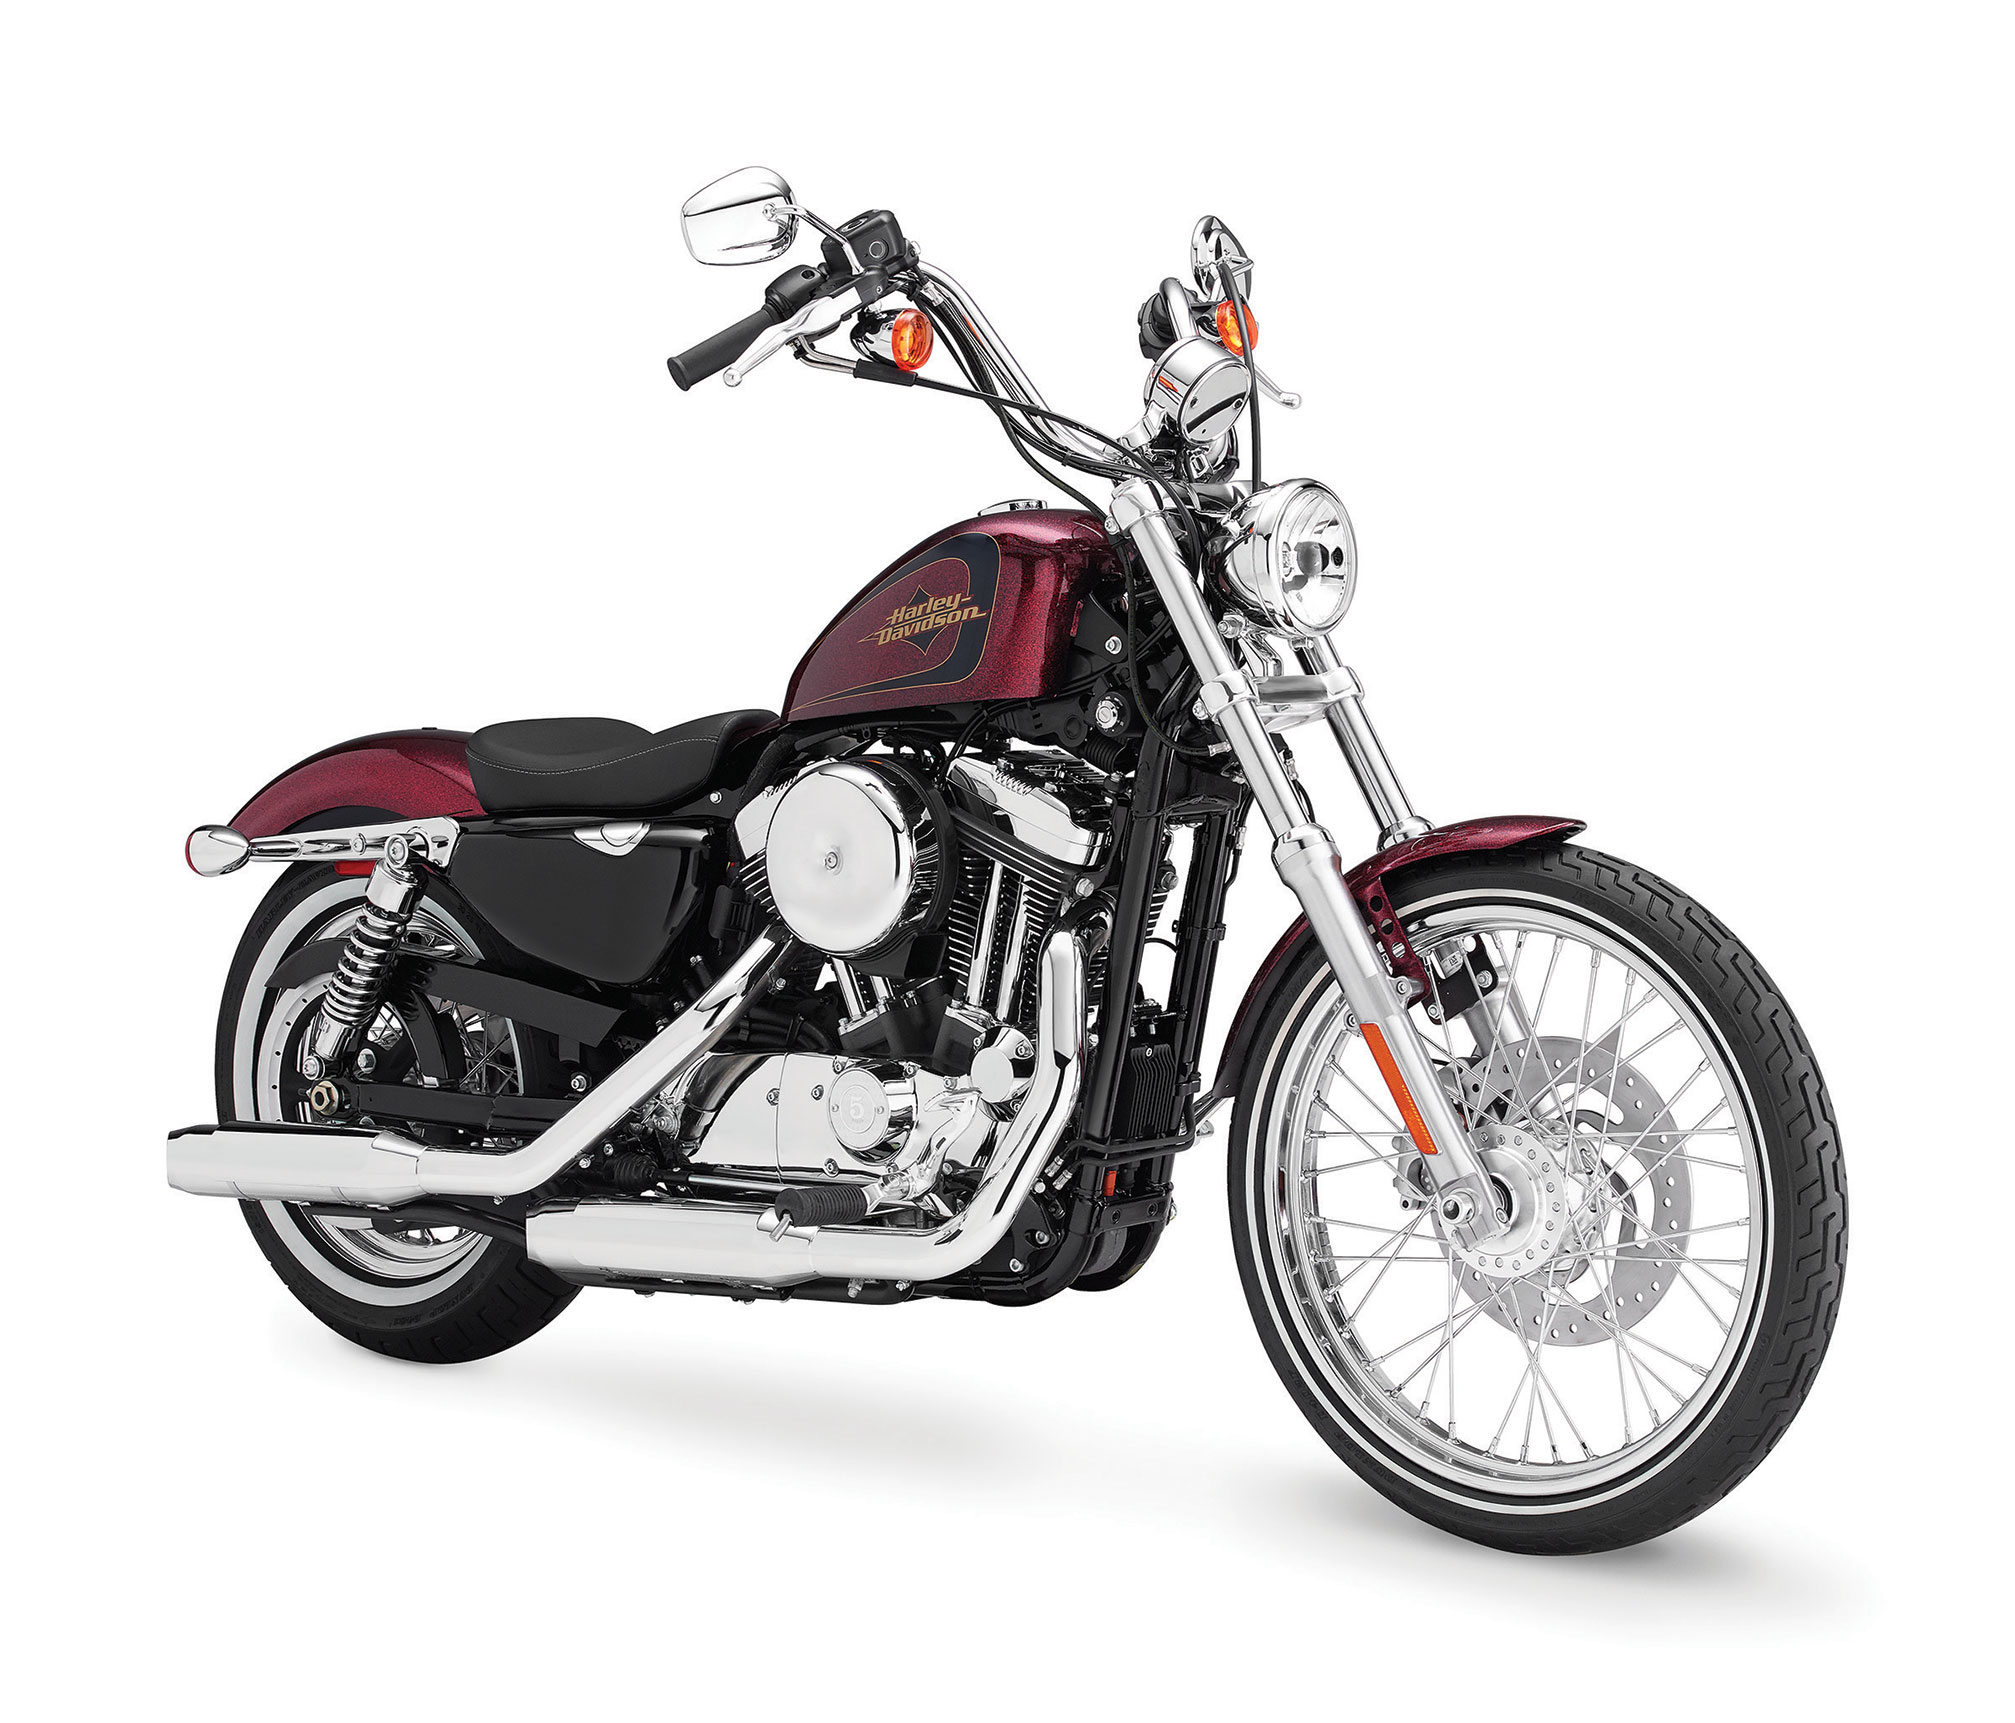 2015 Harley Davidson Xl1200v Seventy Two Review 2014 Fxdl Wiring Diagram Fuel